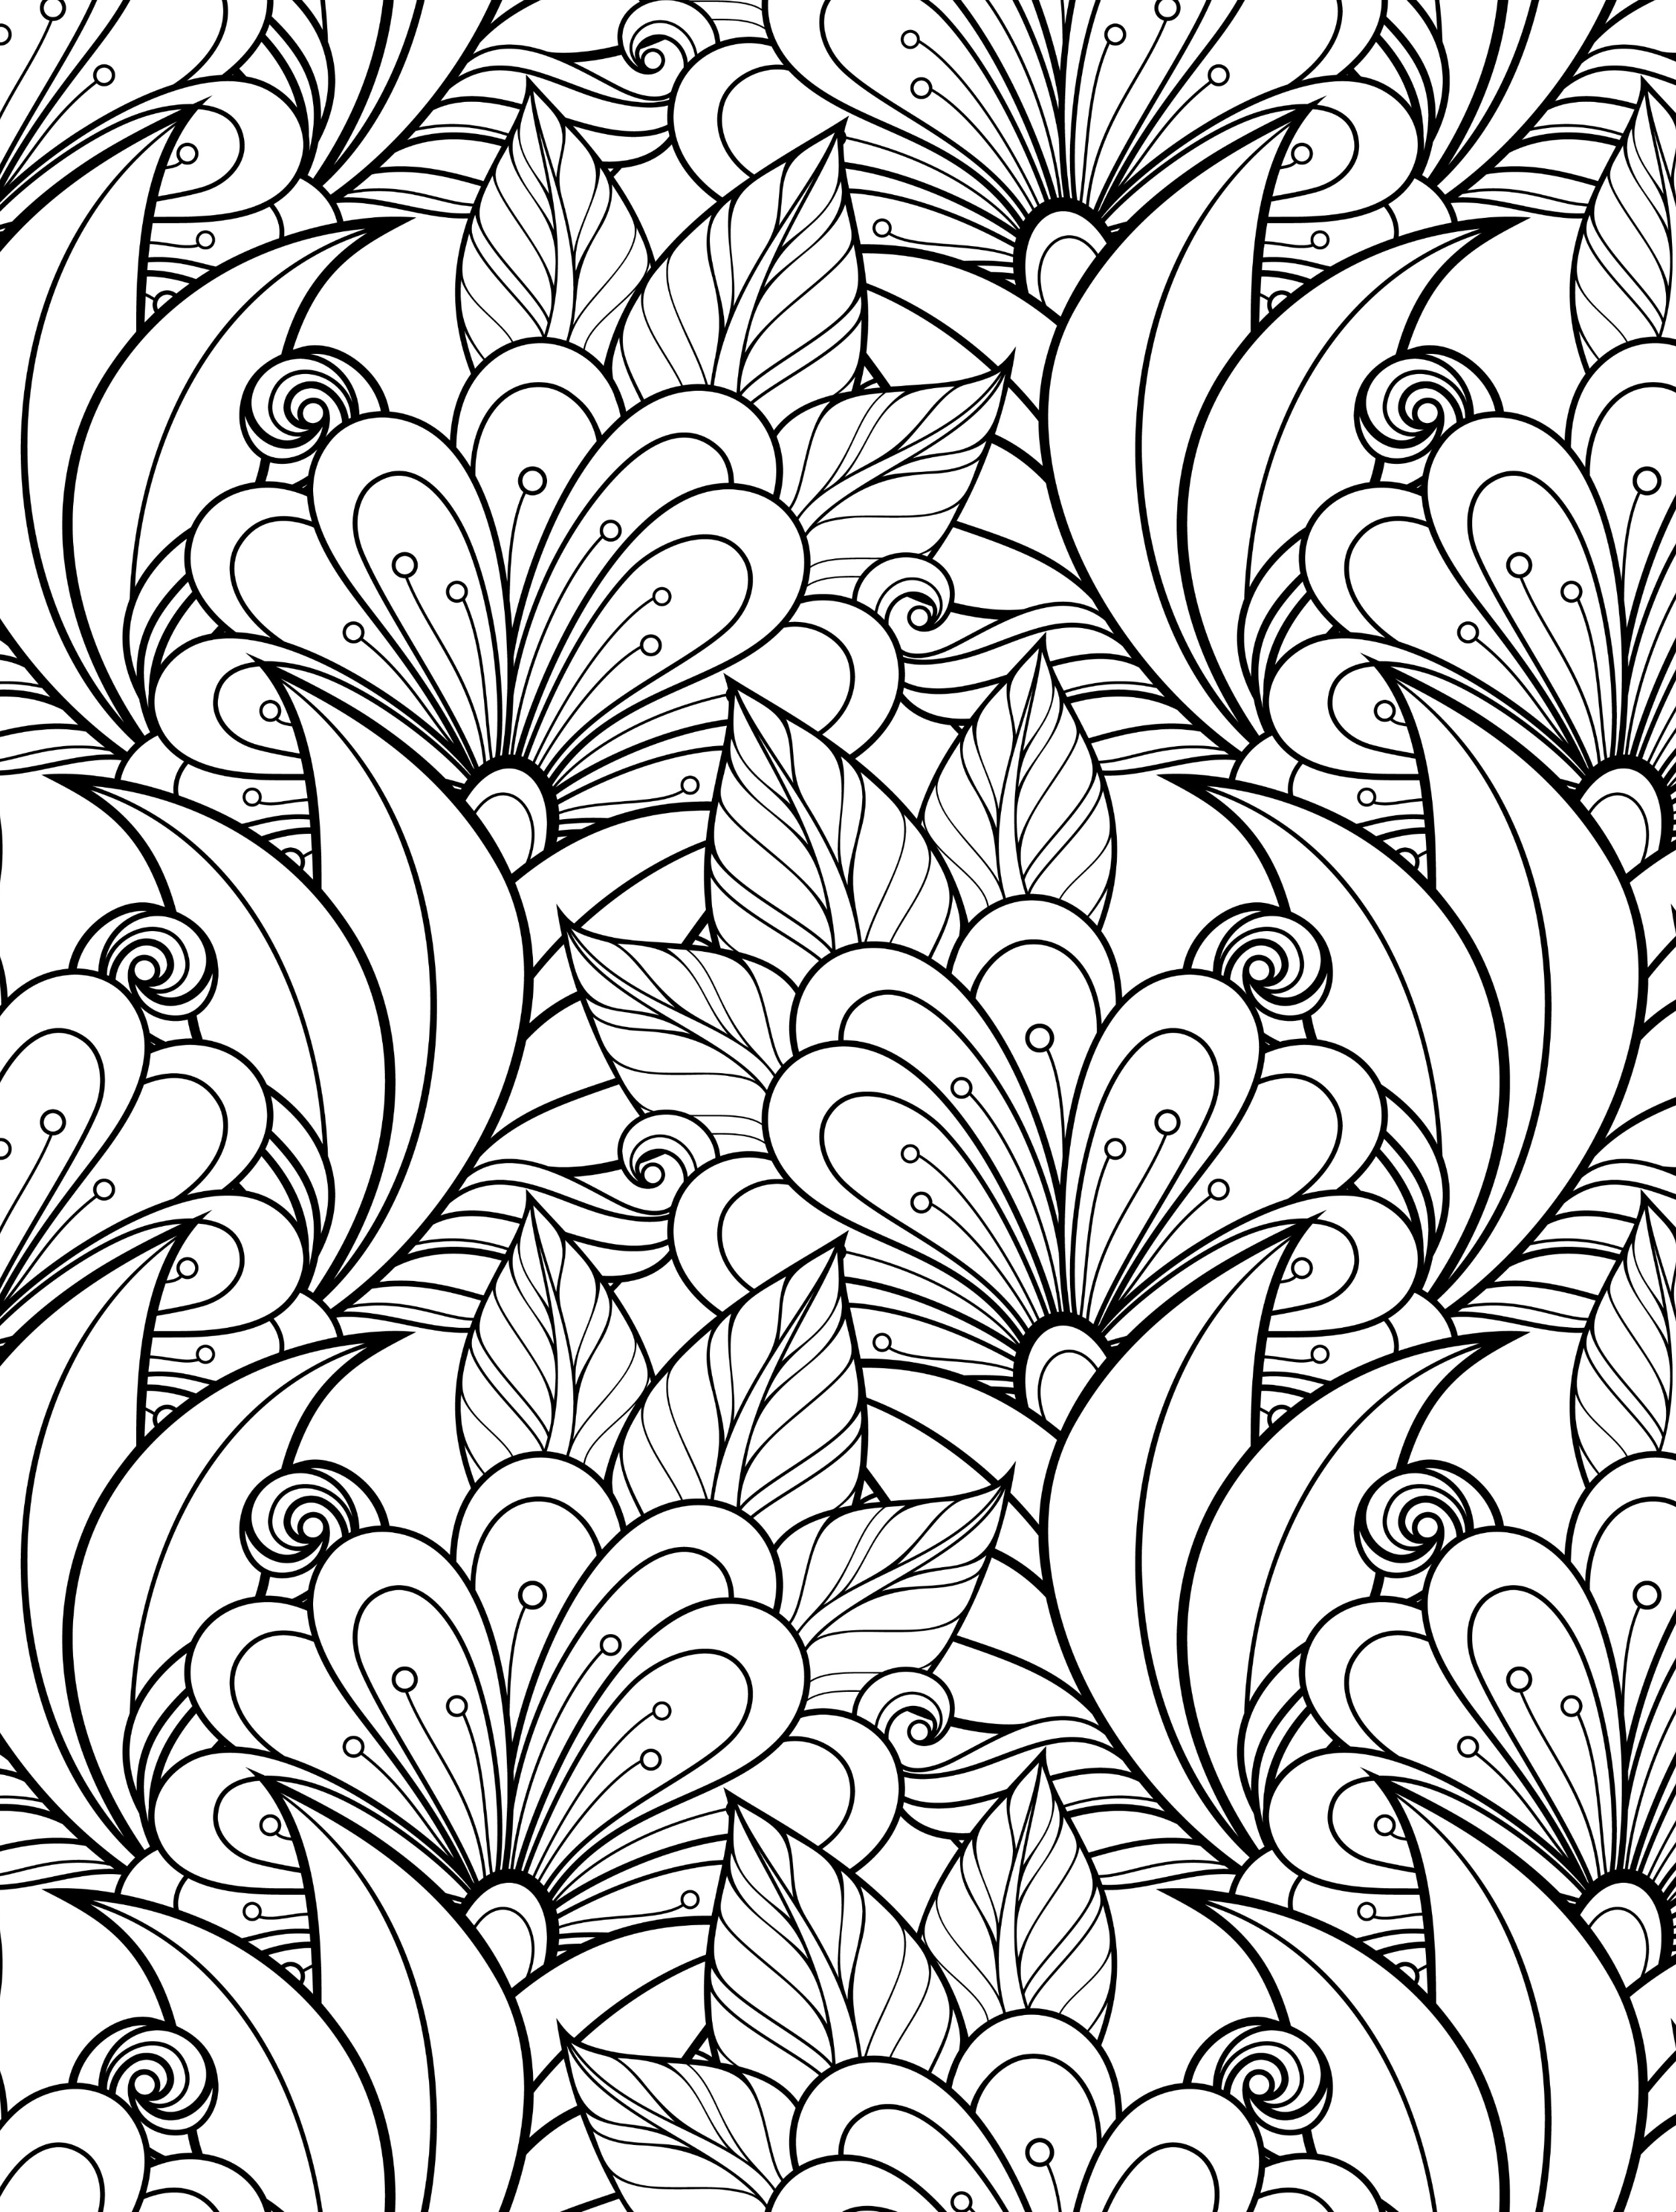 coloring pictures designs inspiraled coloring page crayolacom designs pictures coloring